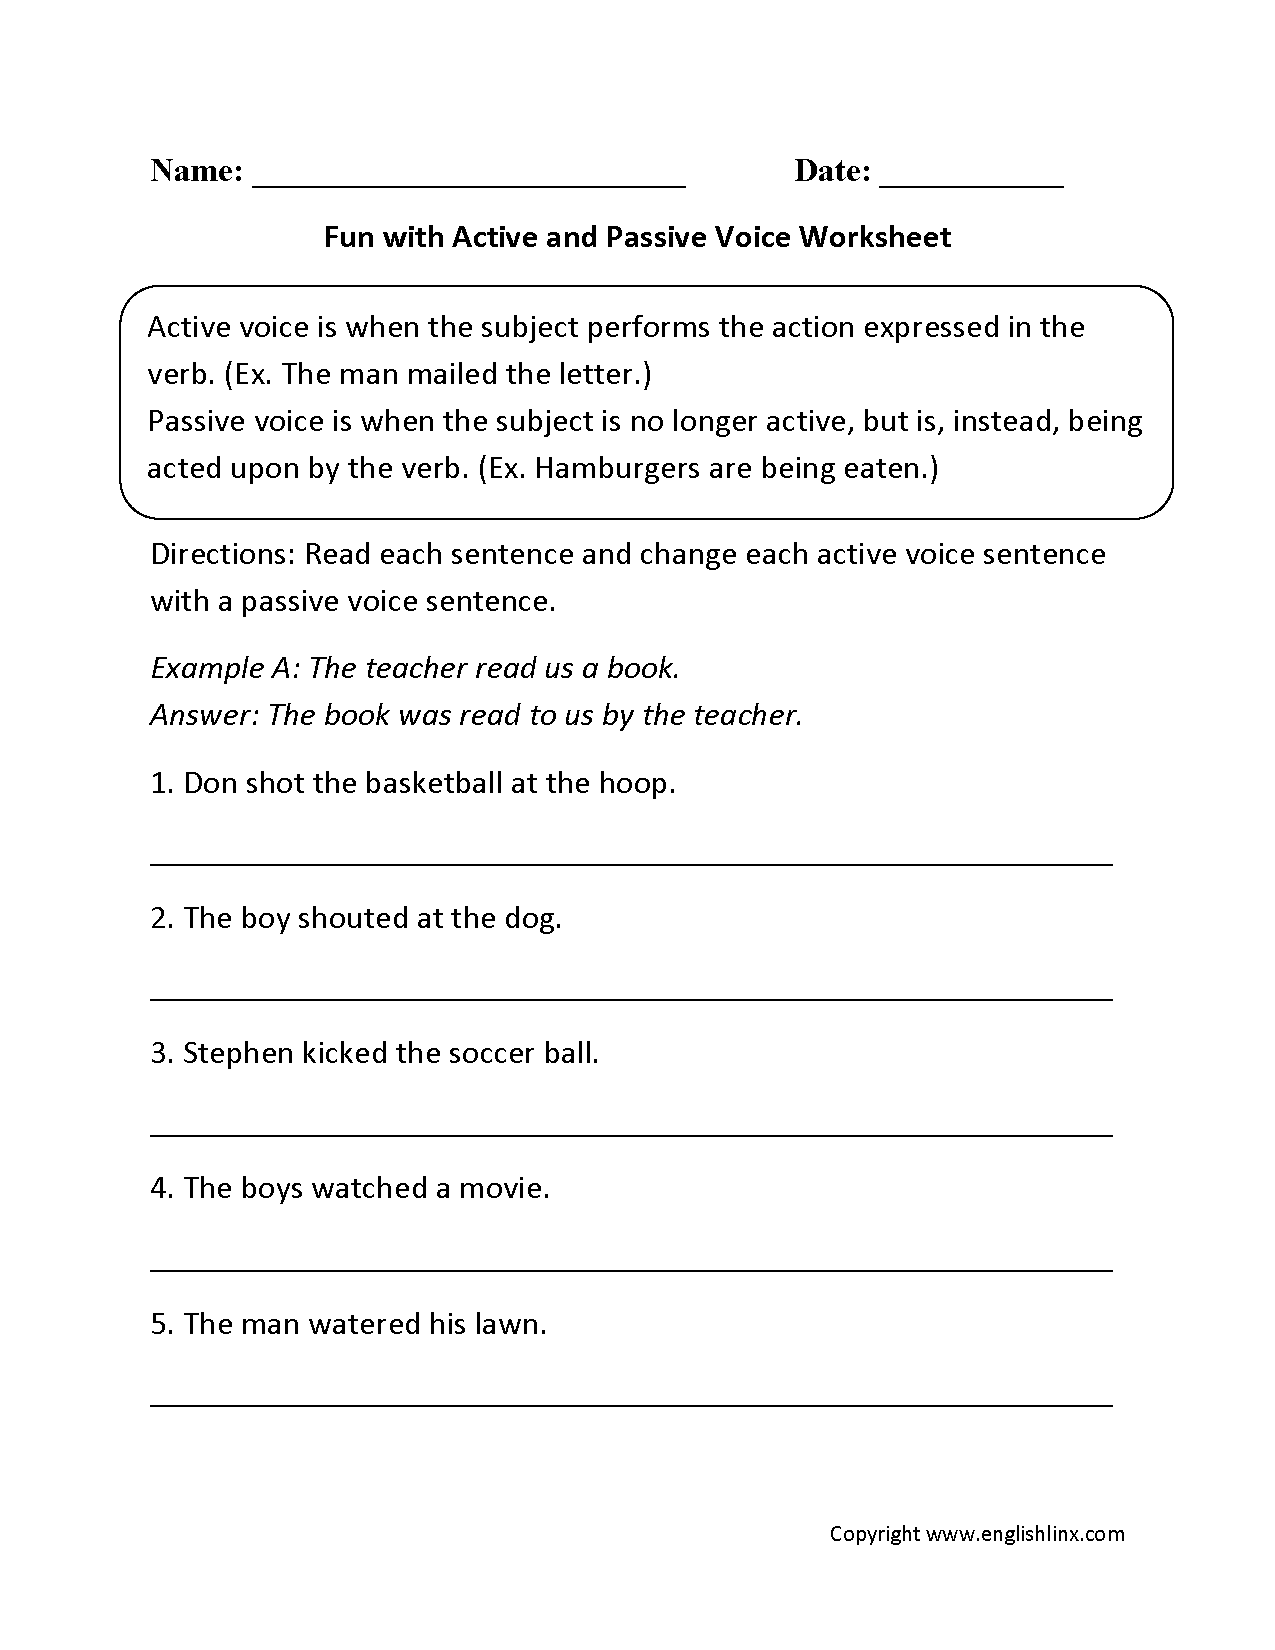 Printables Active And Passive Voice Worksheet englishlinx com active and passive voice worksheets worksheets